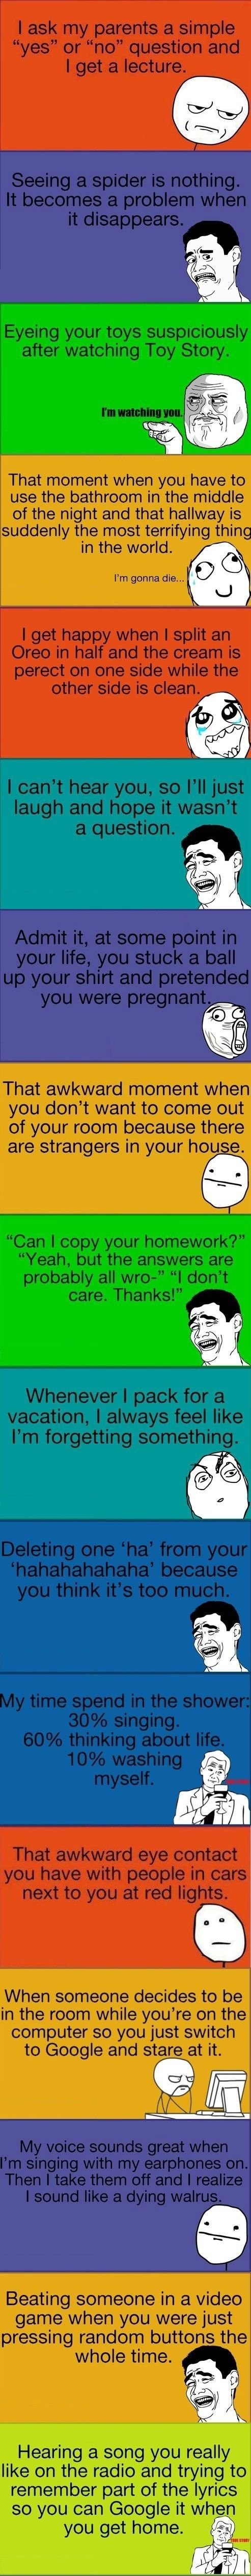 Oh my gosh laughing the whole time almost alll of them are exactly true for me I do nearly every single one of those!! Soooo glad to know that I'm not the only one for the computer! Lol